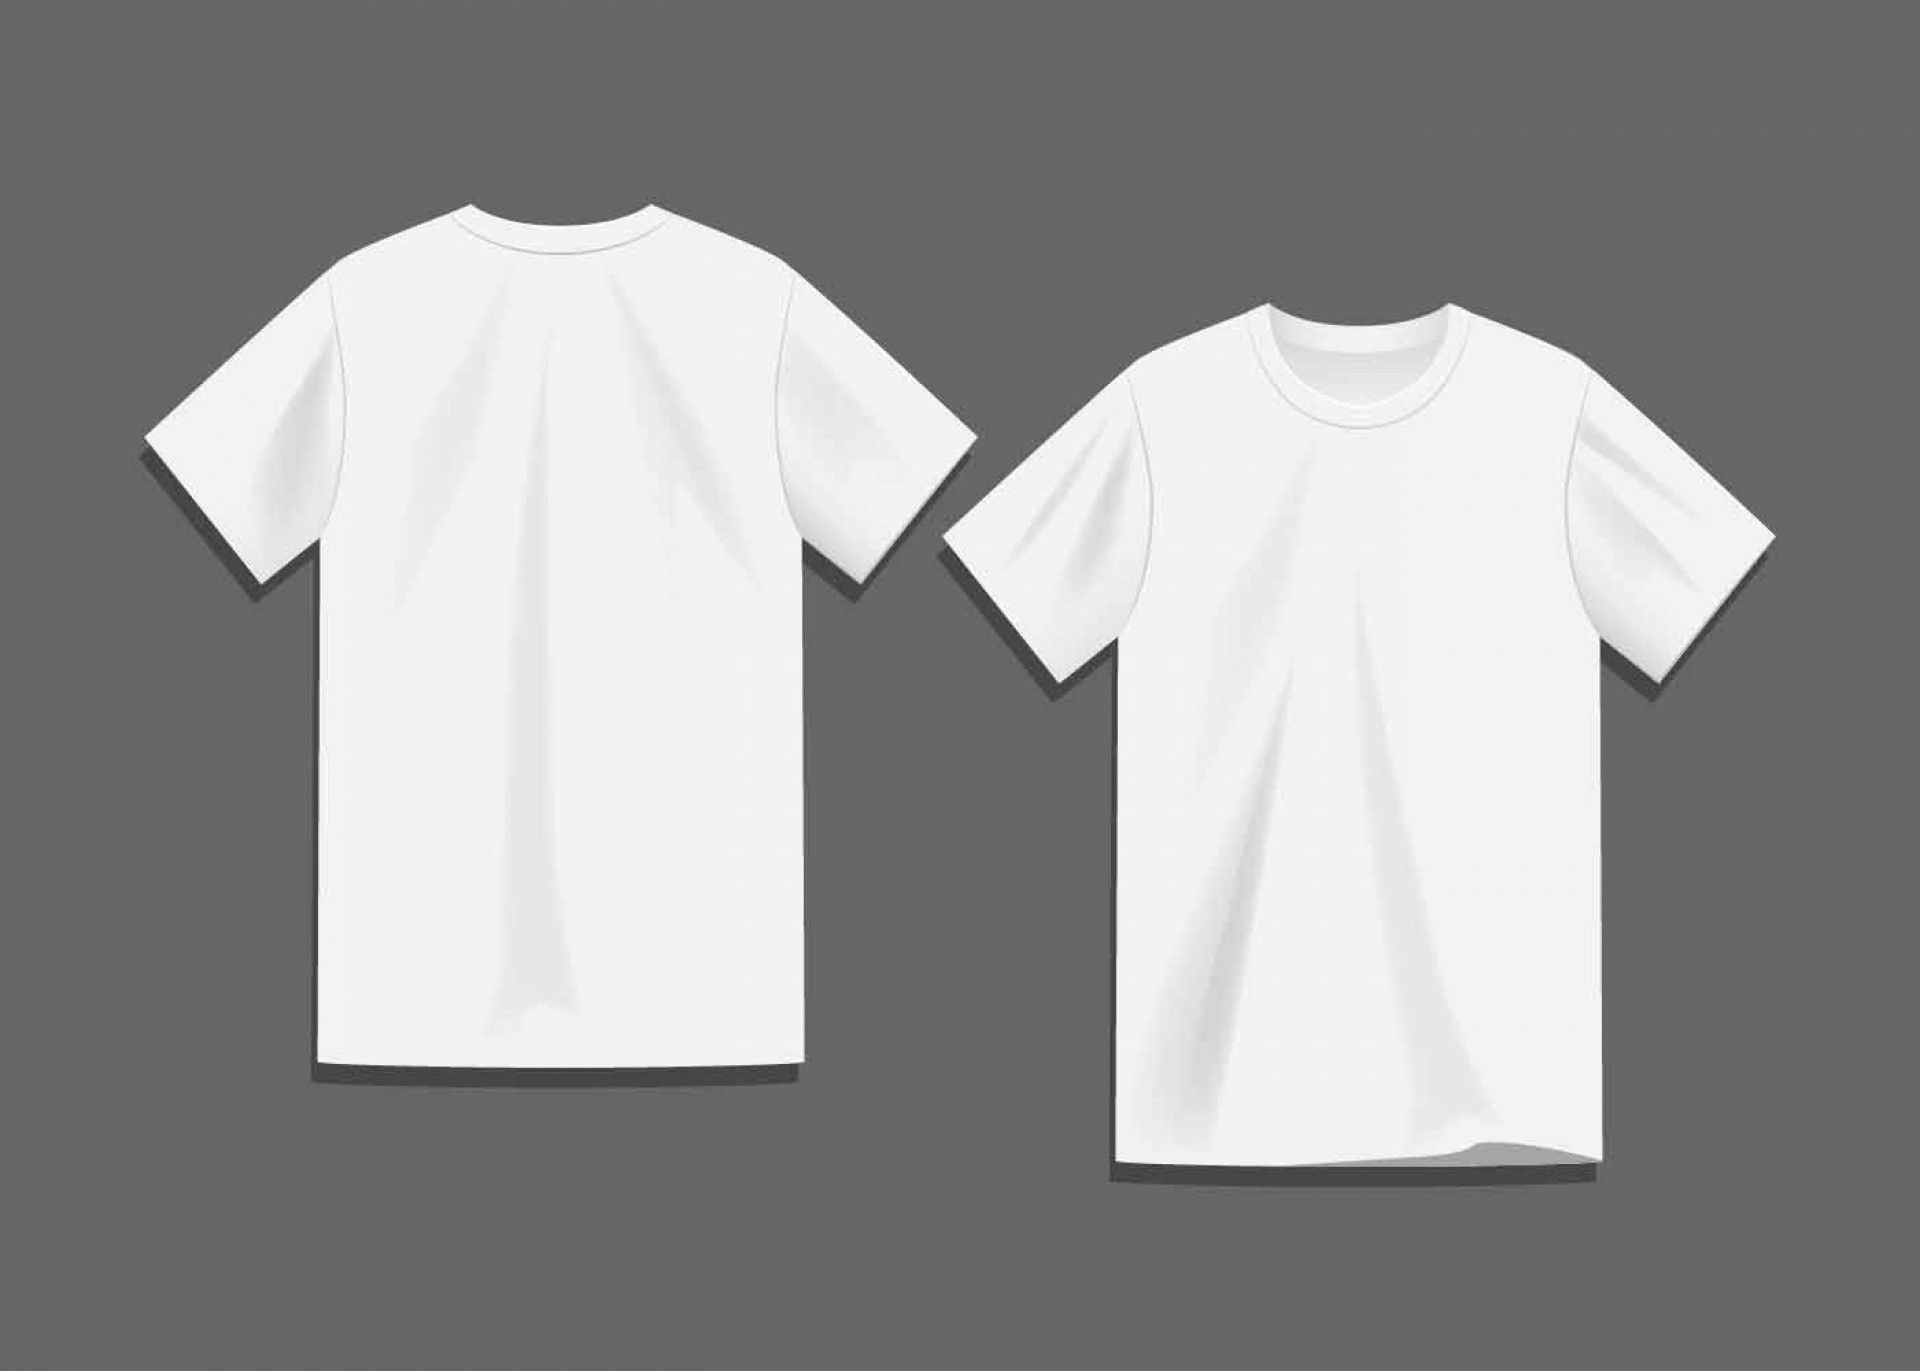 008 Sensational Plain T Shirt Template Idea  Blank Front And Back1920